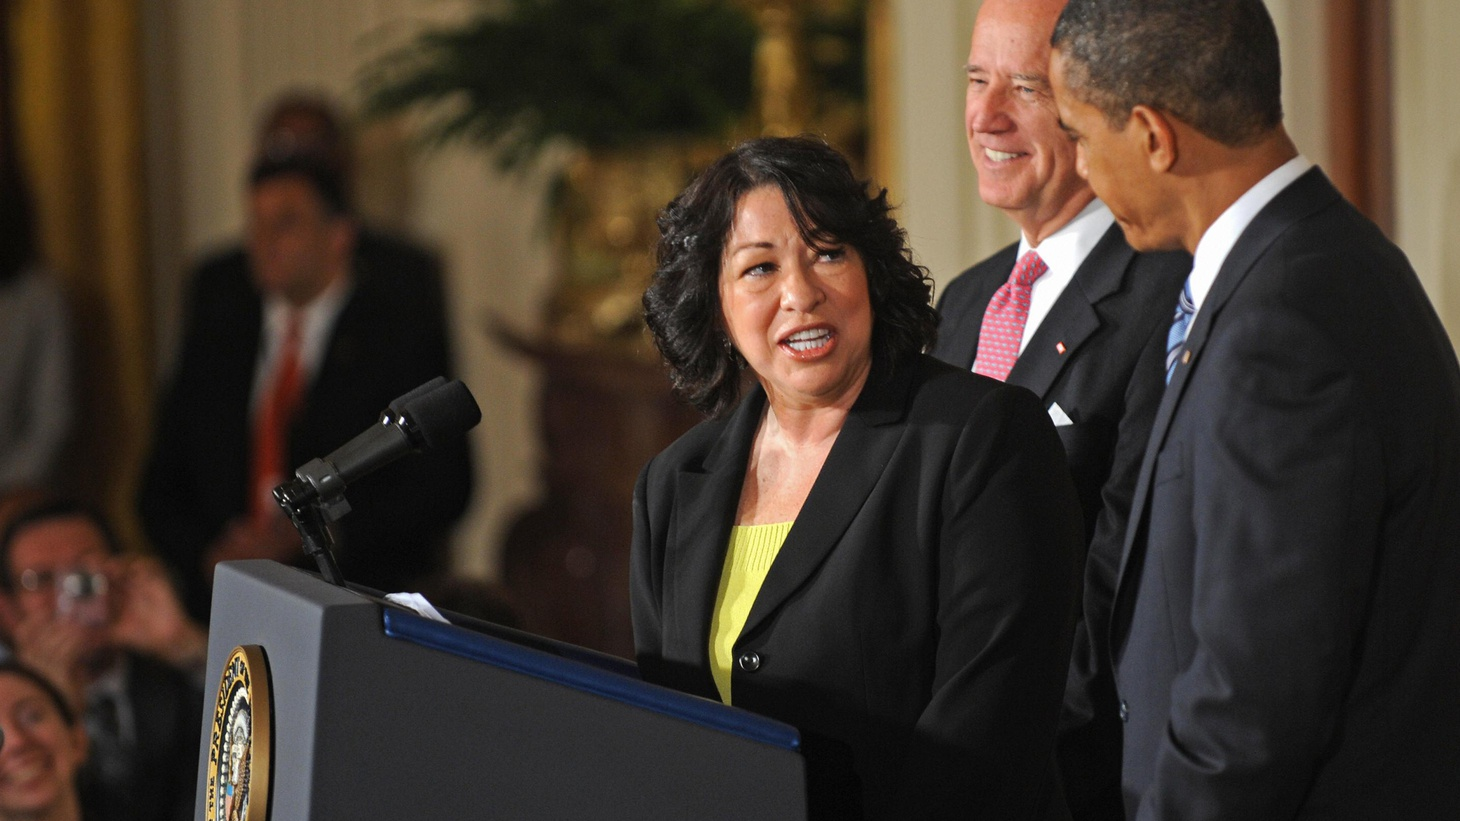 """President Obama has nominated Sonia Sotomayor to the US Supreme Court, a Hispanic woman with 17 years of experience on the federal bench. Supporters emphasize her legal credentials and her common touch. Opponents call her """"an activist judge."""" We hear both sides. Also, North Korea followed up on yesterday's nuclear test with more saber-rattling today, and the California State Supreme Court has upheld Proposition 8, the voters' ban on gay marriage."""